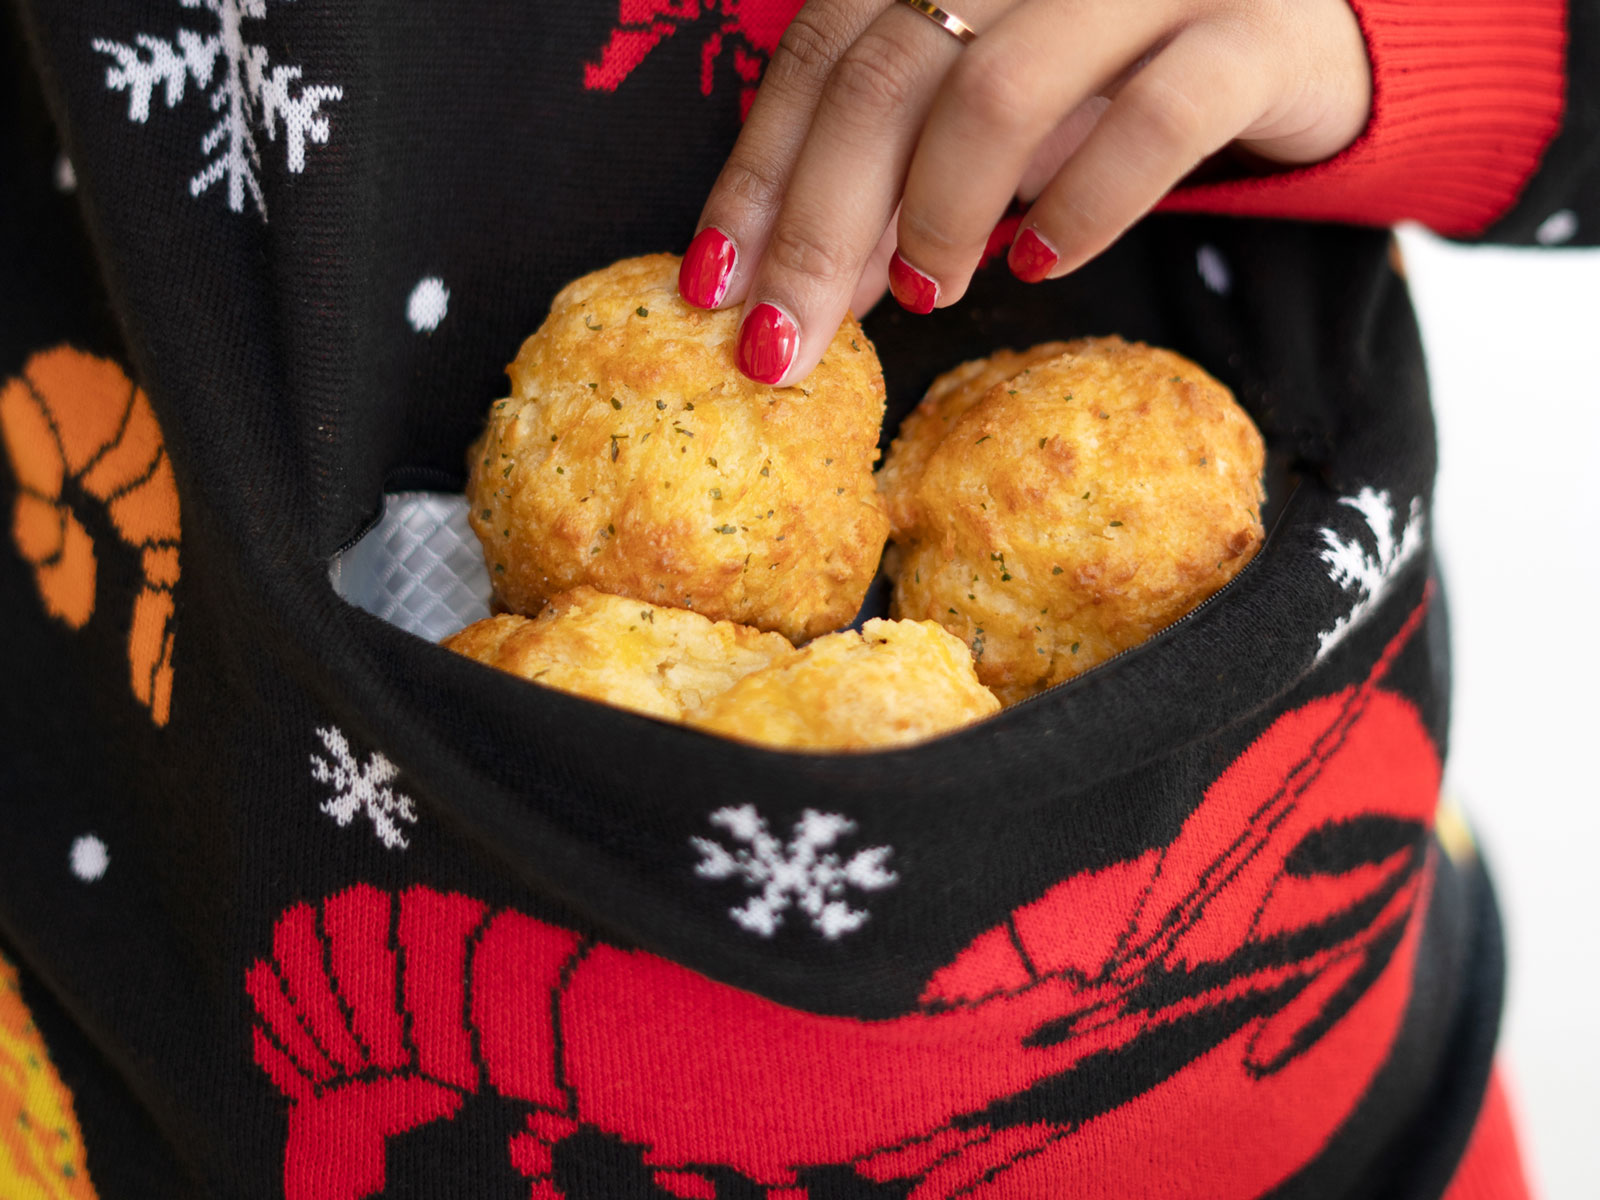 Red Lobster's Ugly Sweater Has a Cheddar Bay Biscuit Pocket red-lobster-sweater-FT-BLOG1119